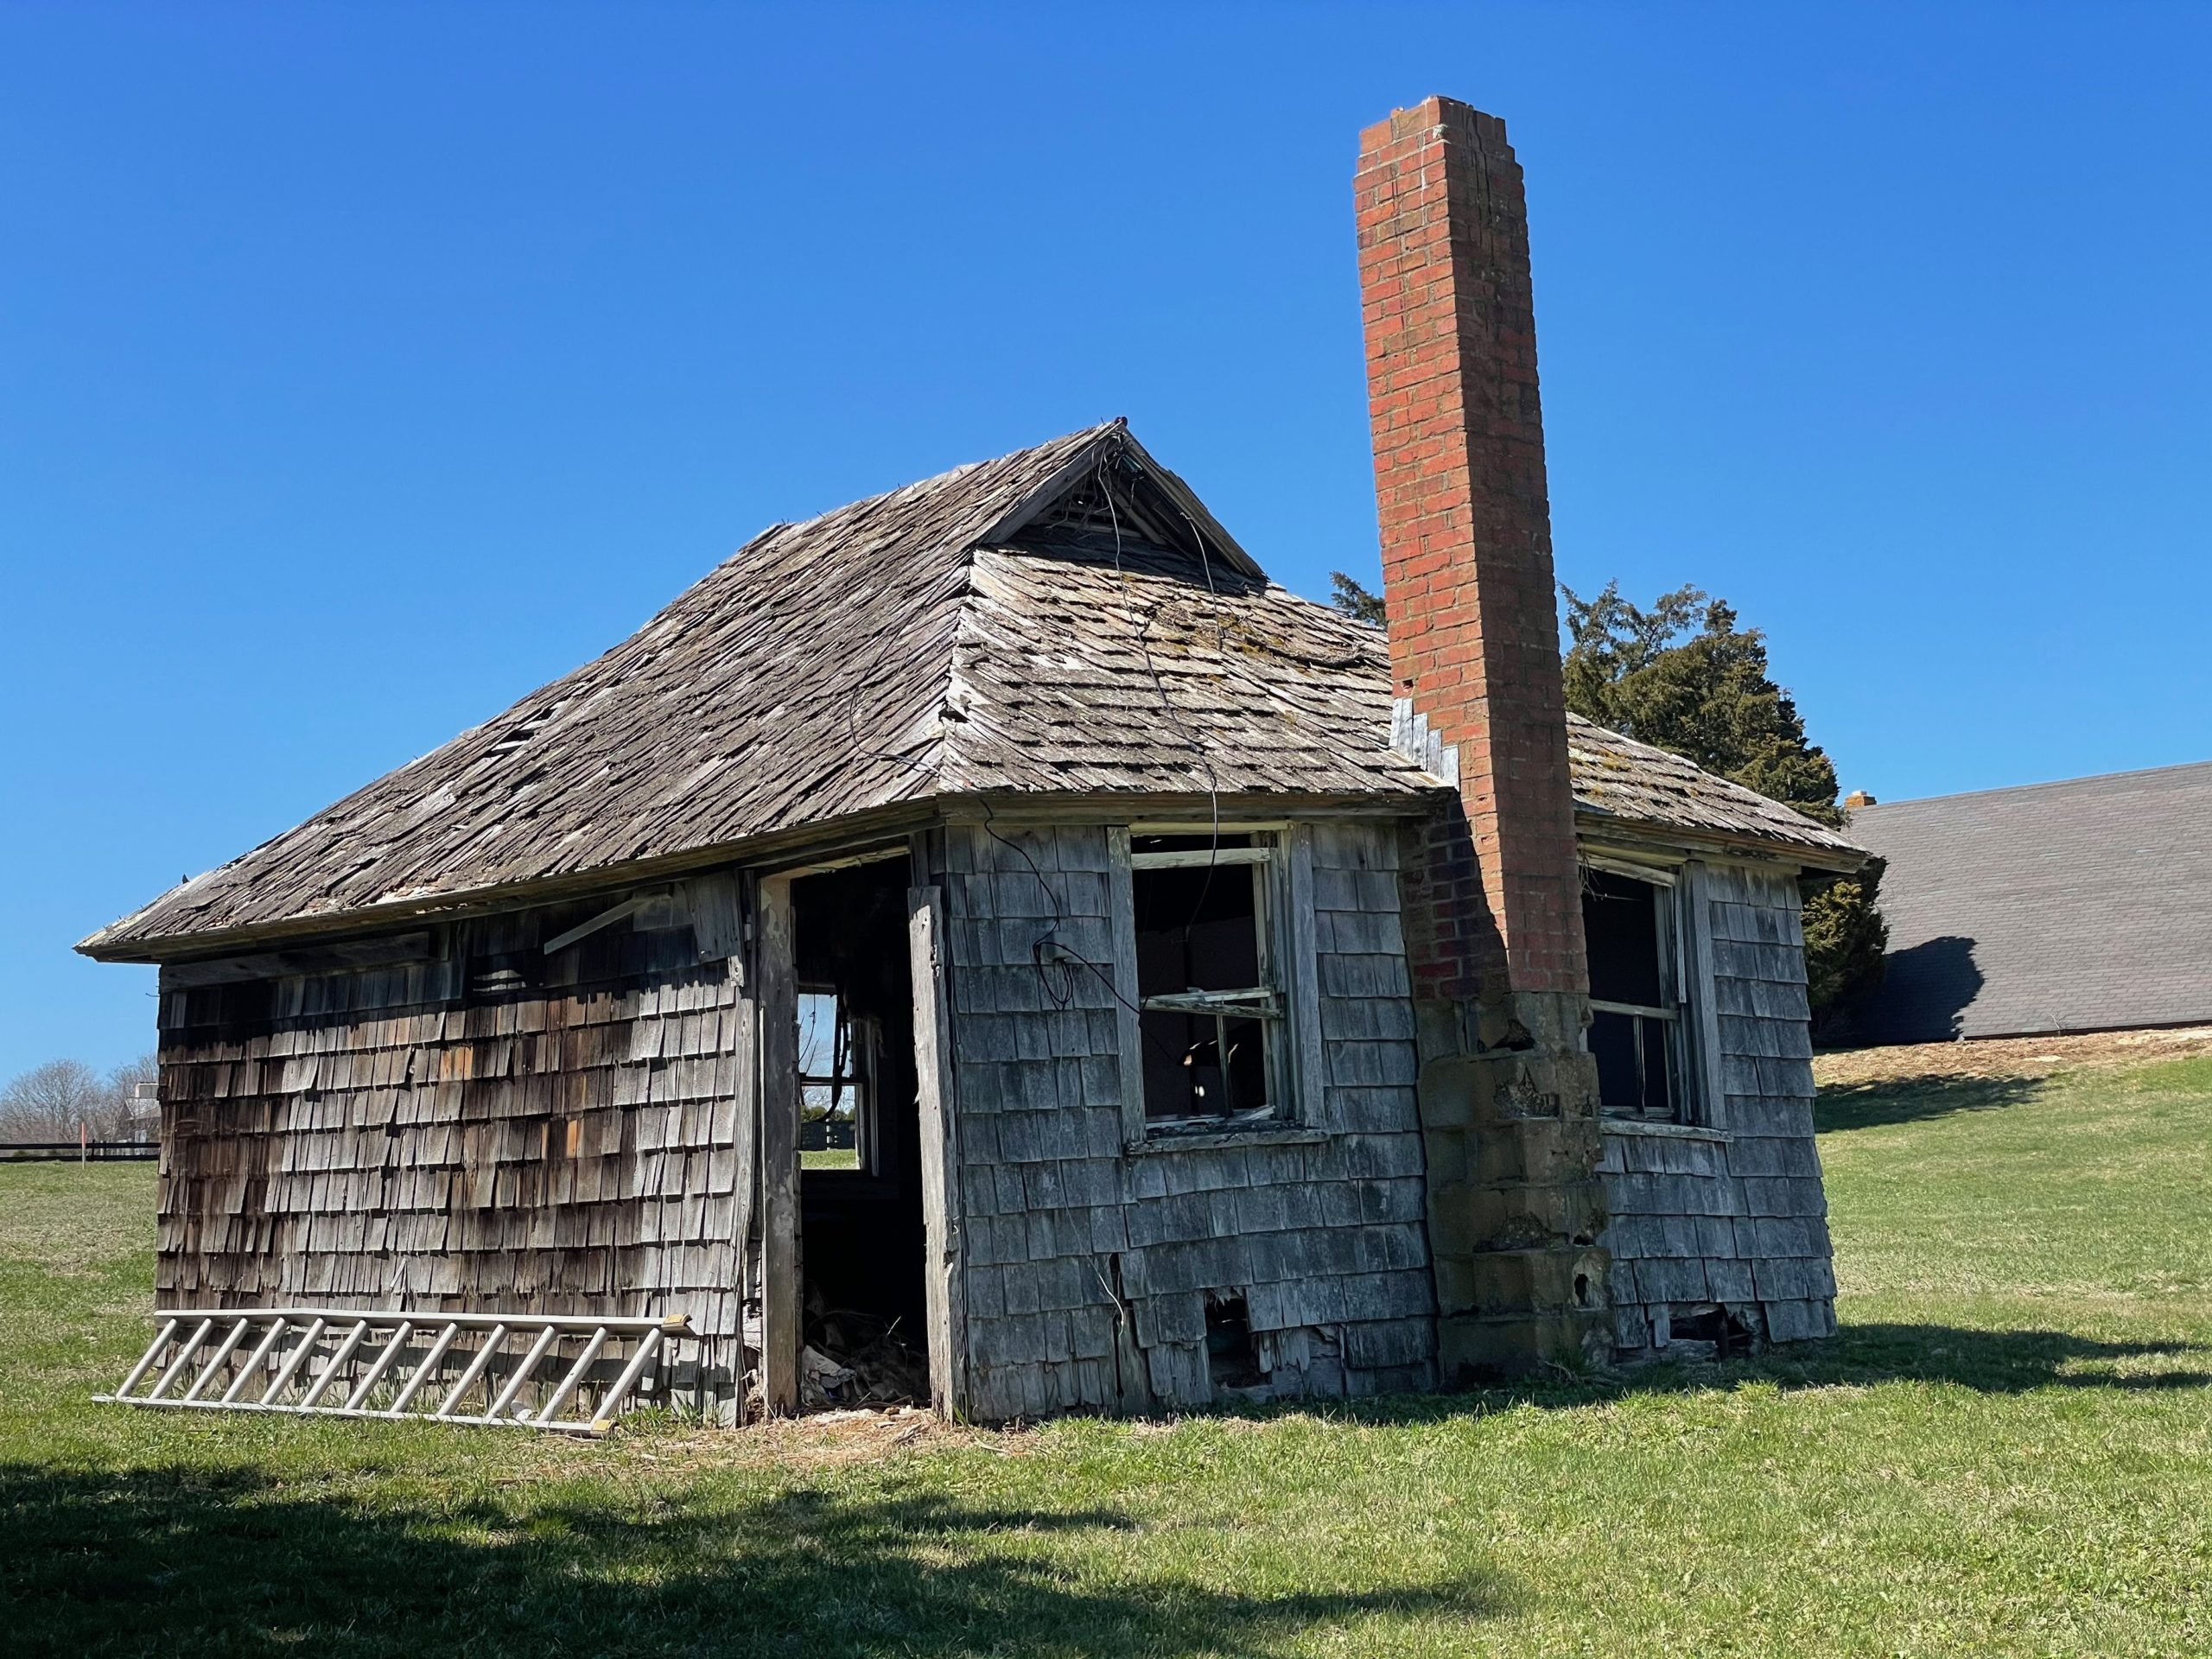 'The Little House' was home to migrant workers and farmhands in Wainscott for a century. It will be demolished in May by developers if it is not relocated to a new property.